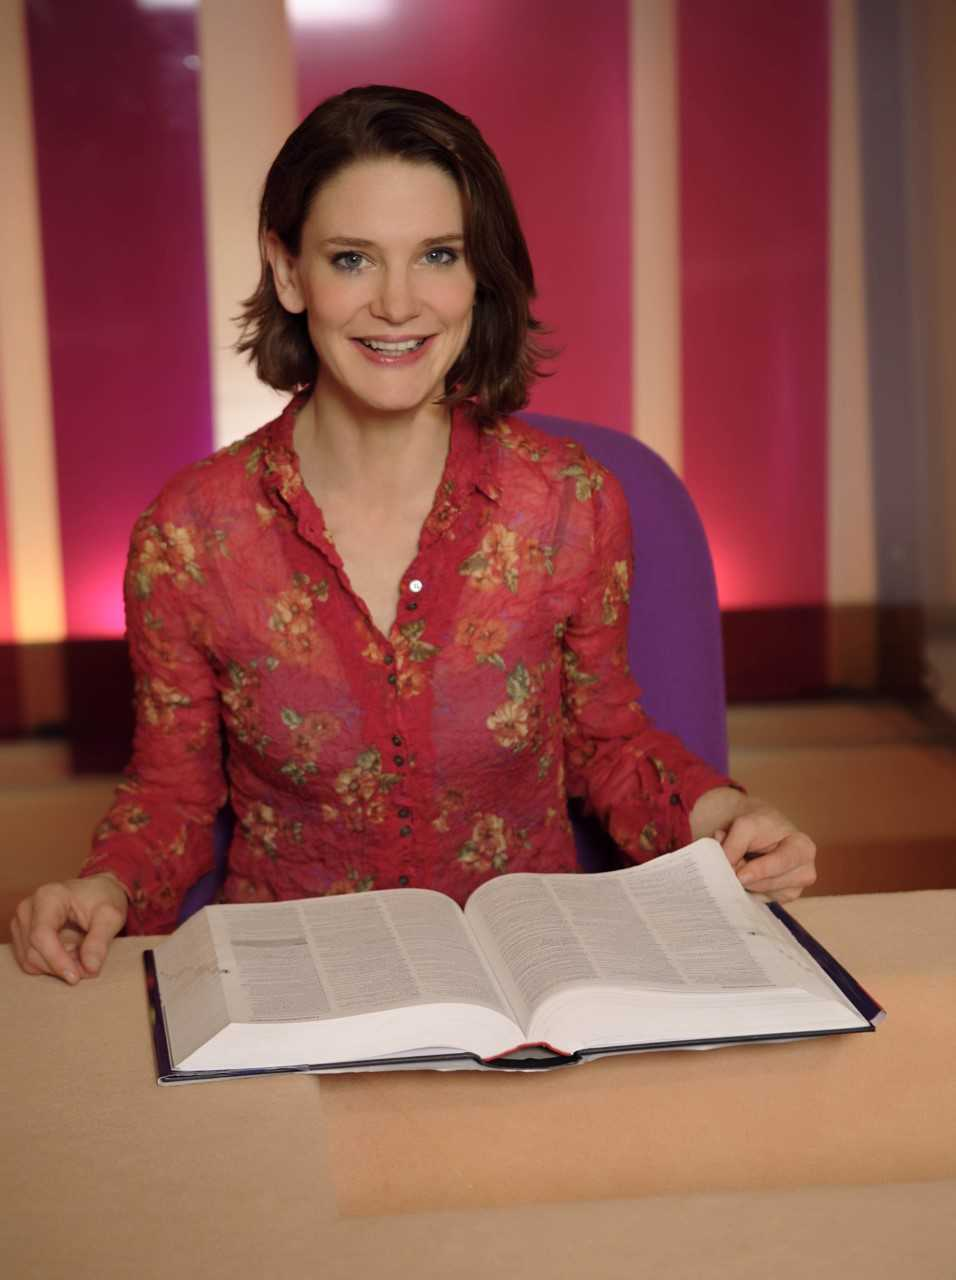 Susie Dent is coming to Newbury